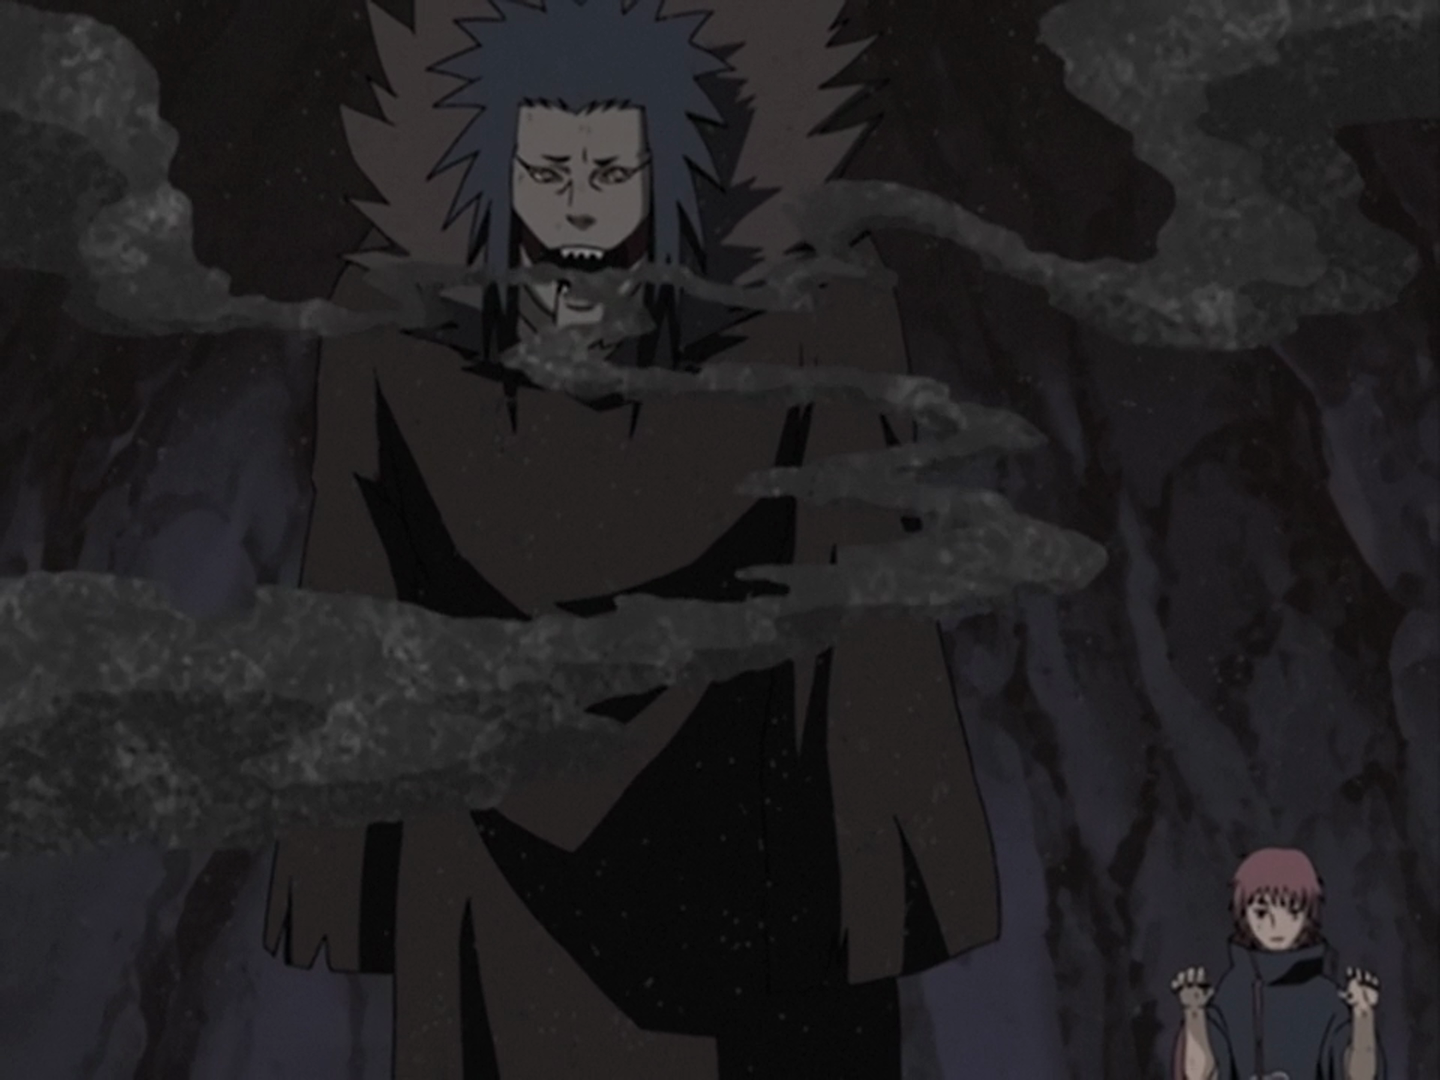 http://static2.wikia.nocookie.net/__cb20090428135213/naruto/images/1/1a/Iron_Sand.PNG